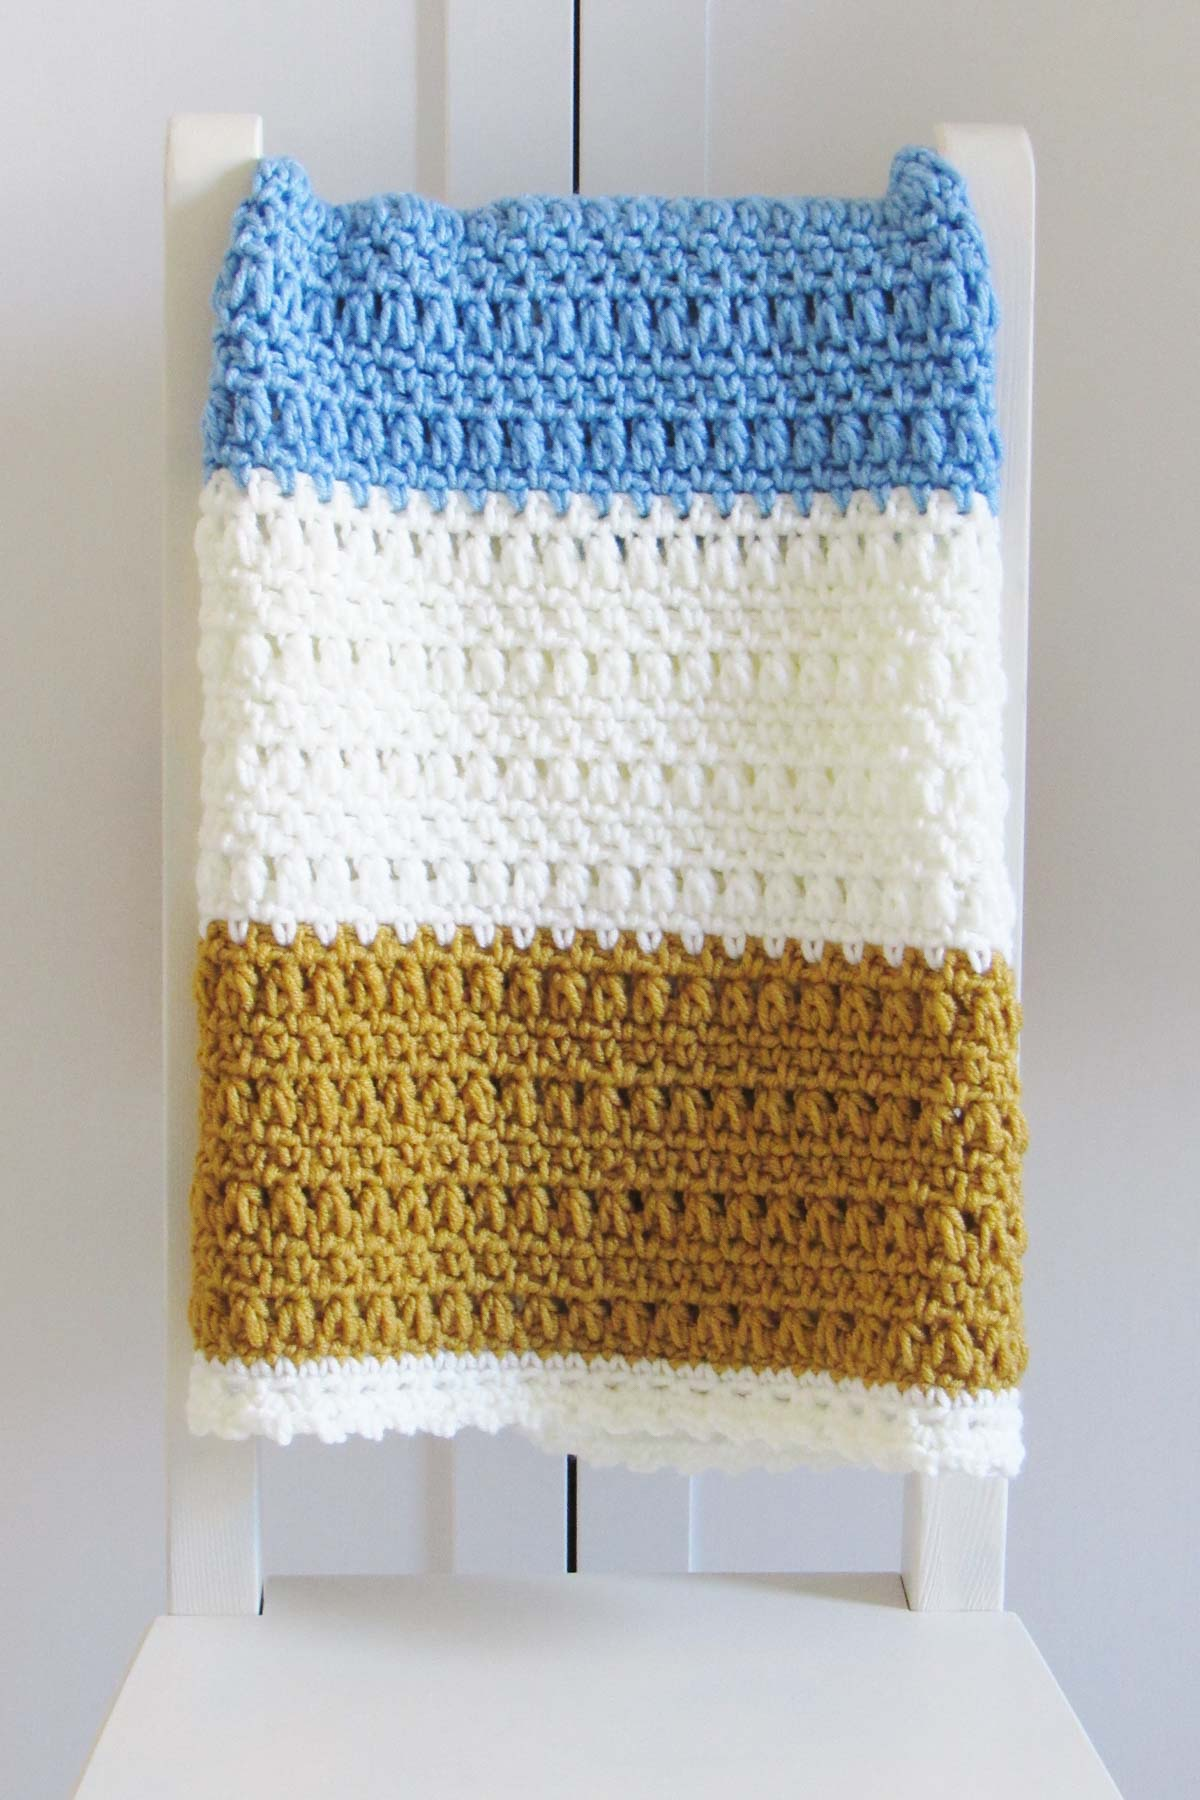 Easy crochet blanket for beginners folded in a rectangle and placed on the back of a white chair. The blanket has wide gold, white and light blue stripes.